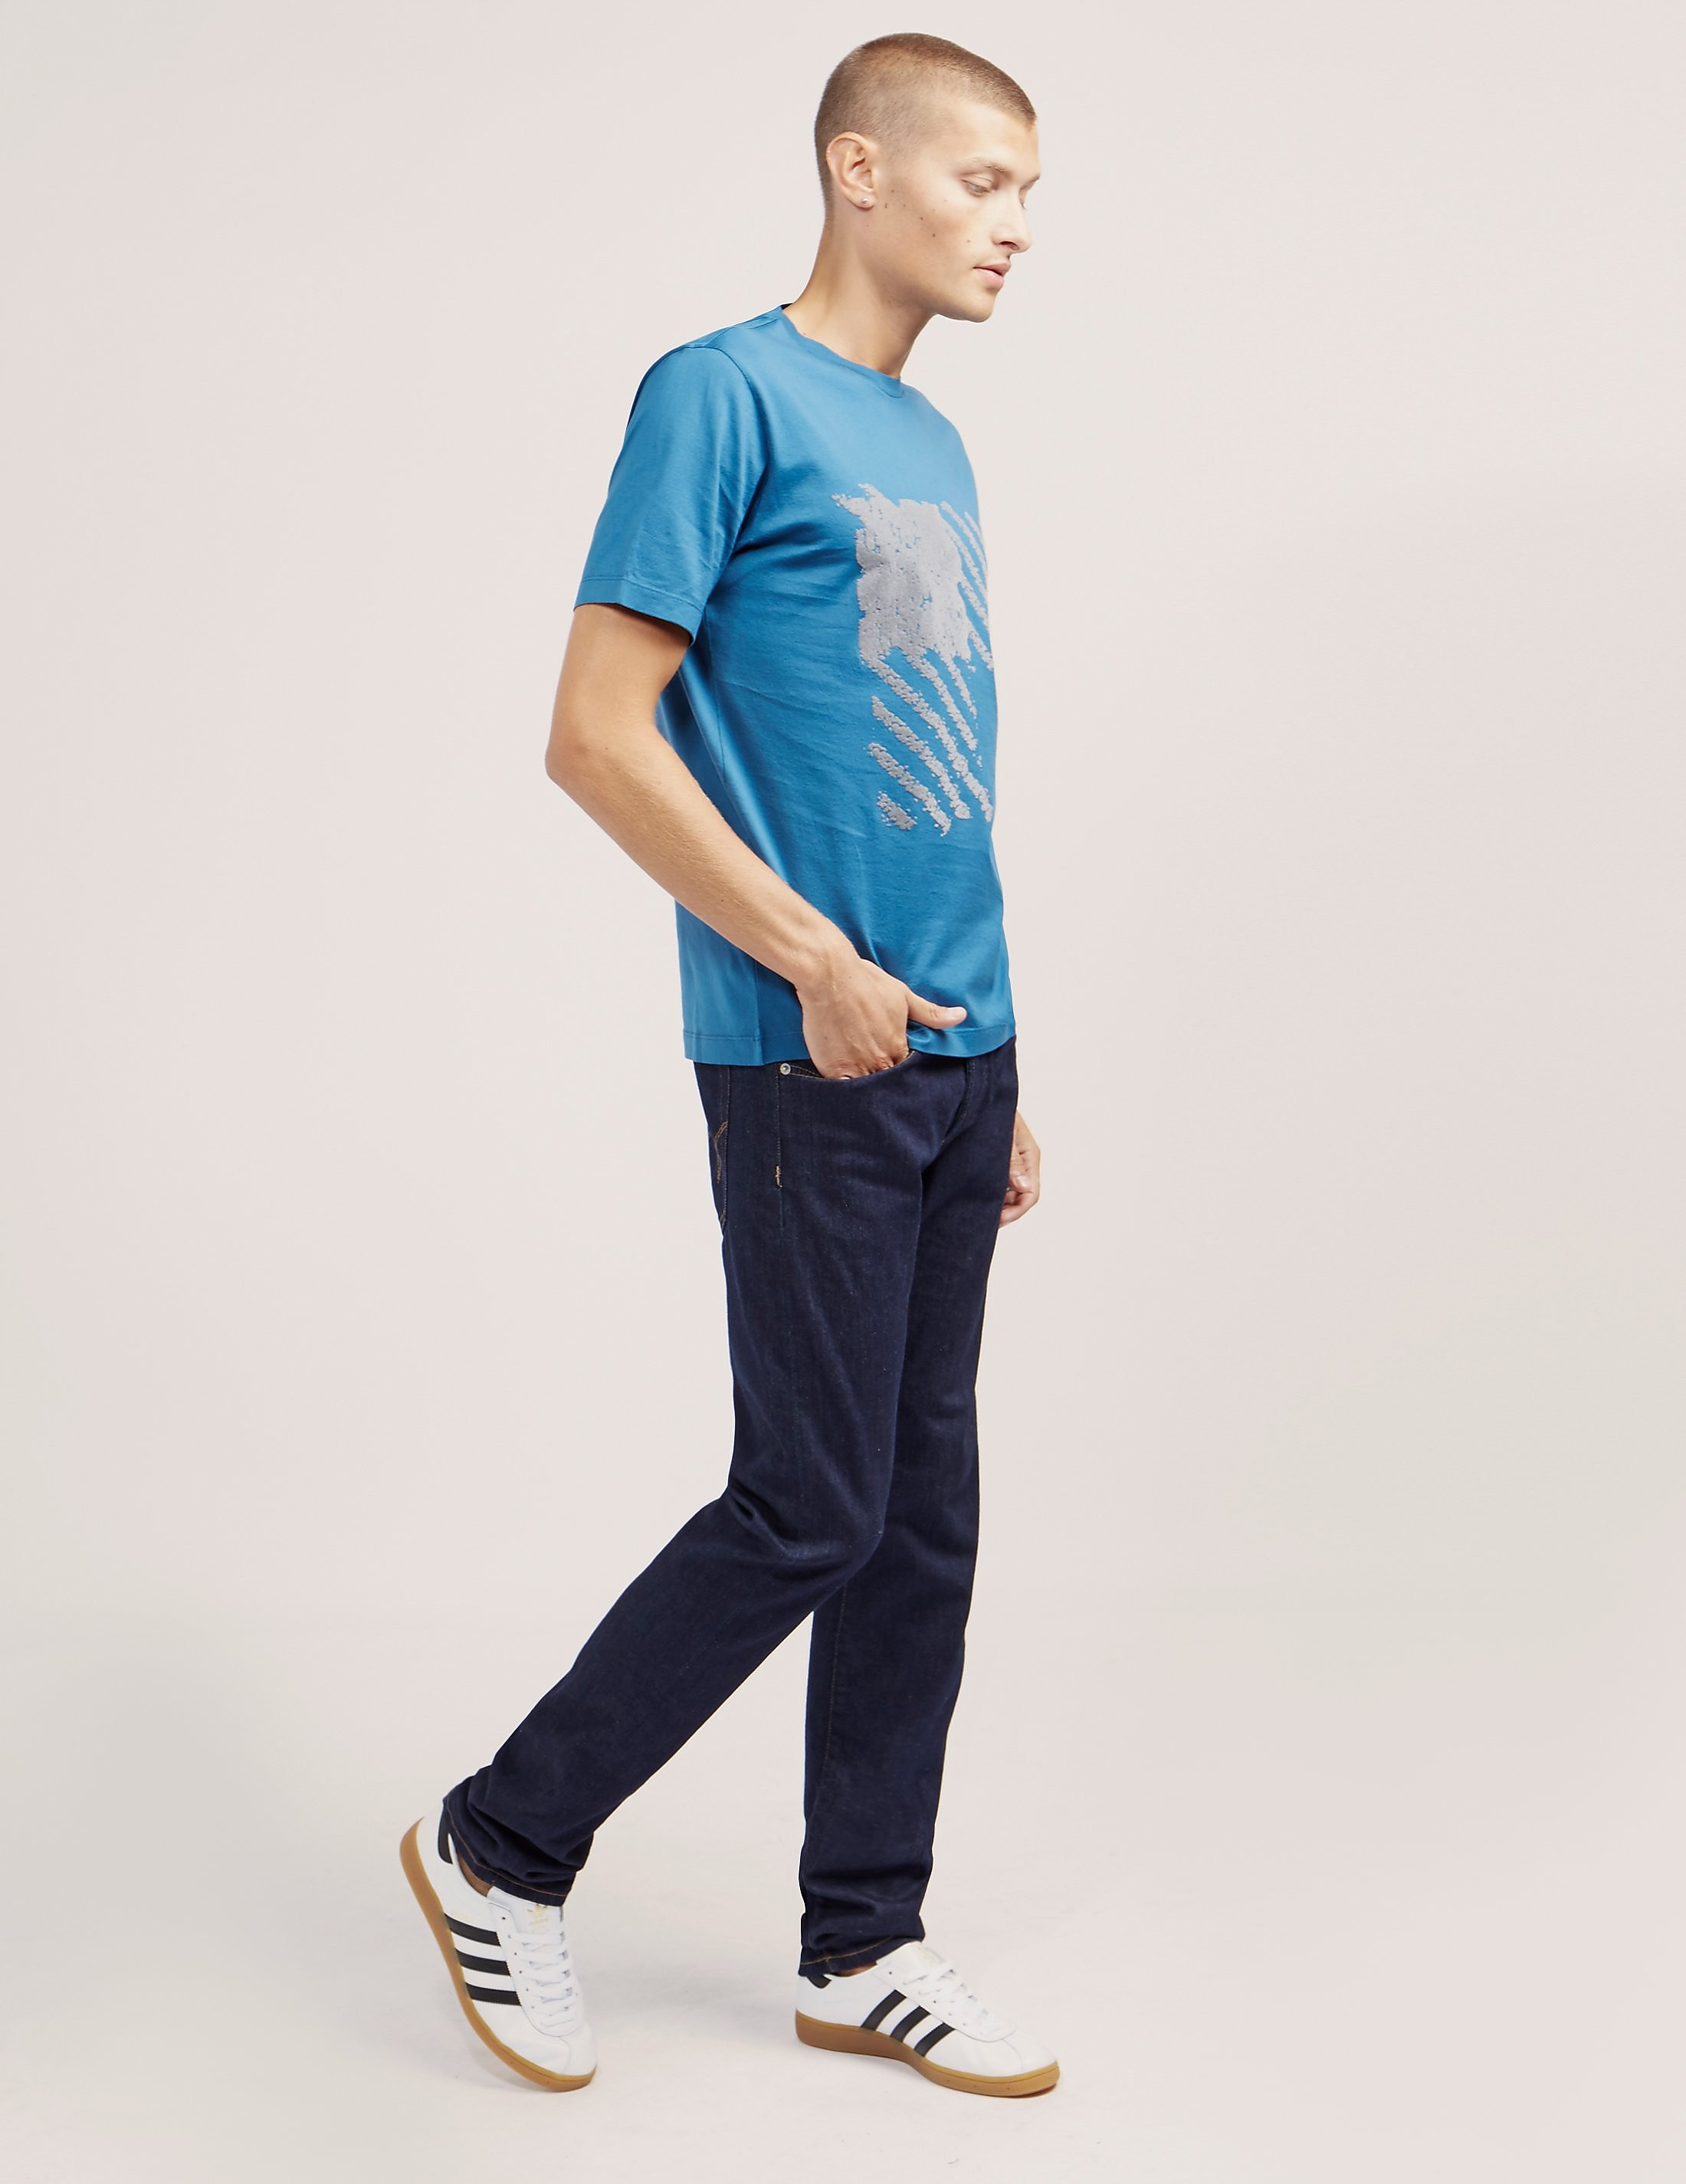 Z Zegna Square Short Sleeve T-Shirt